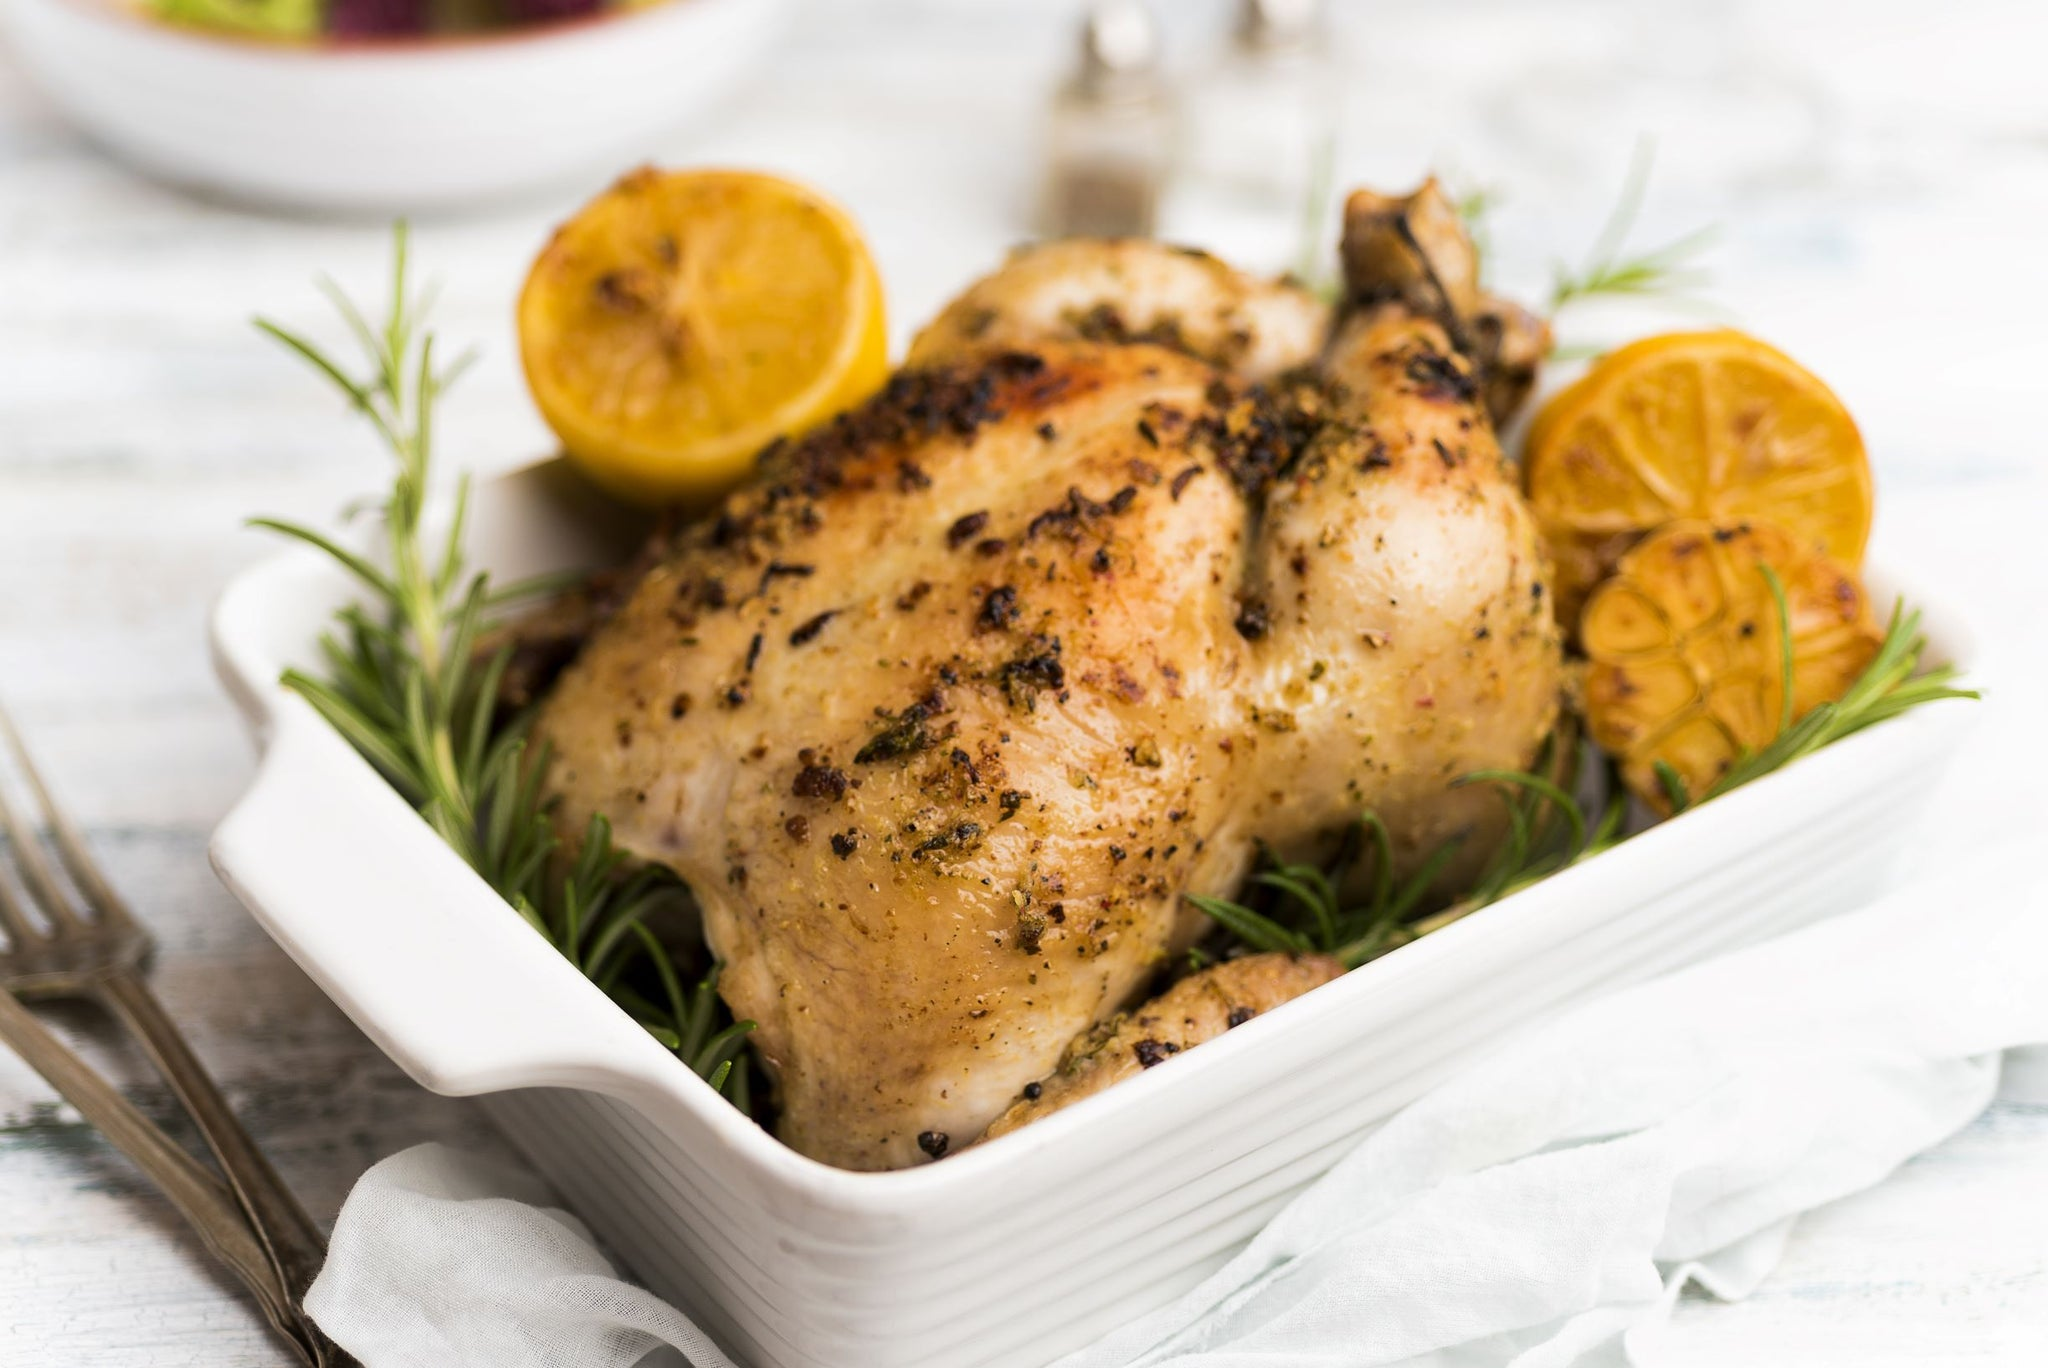 whole roasted chicken - lemon and rosemary (1 whole chicken)